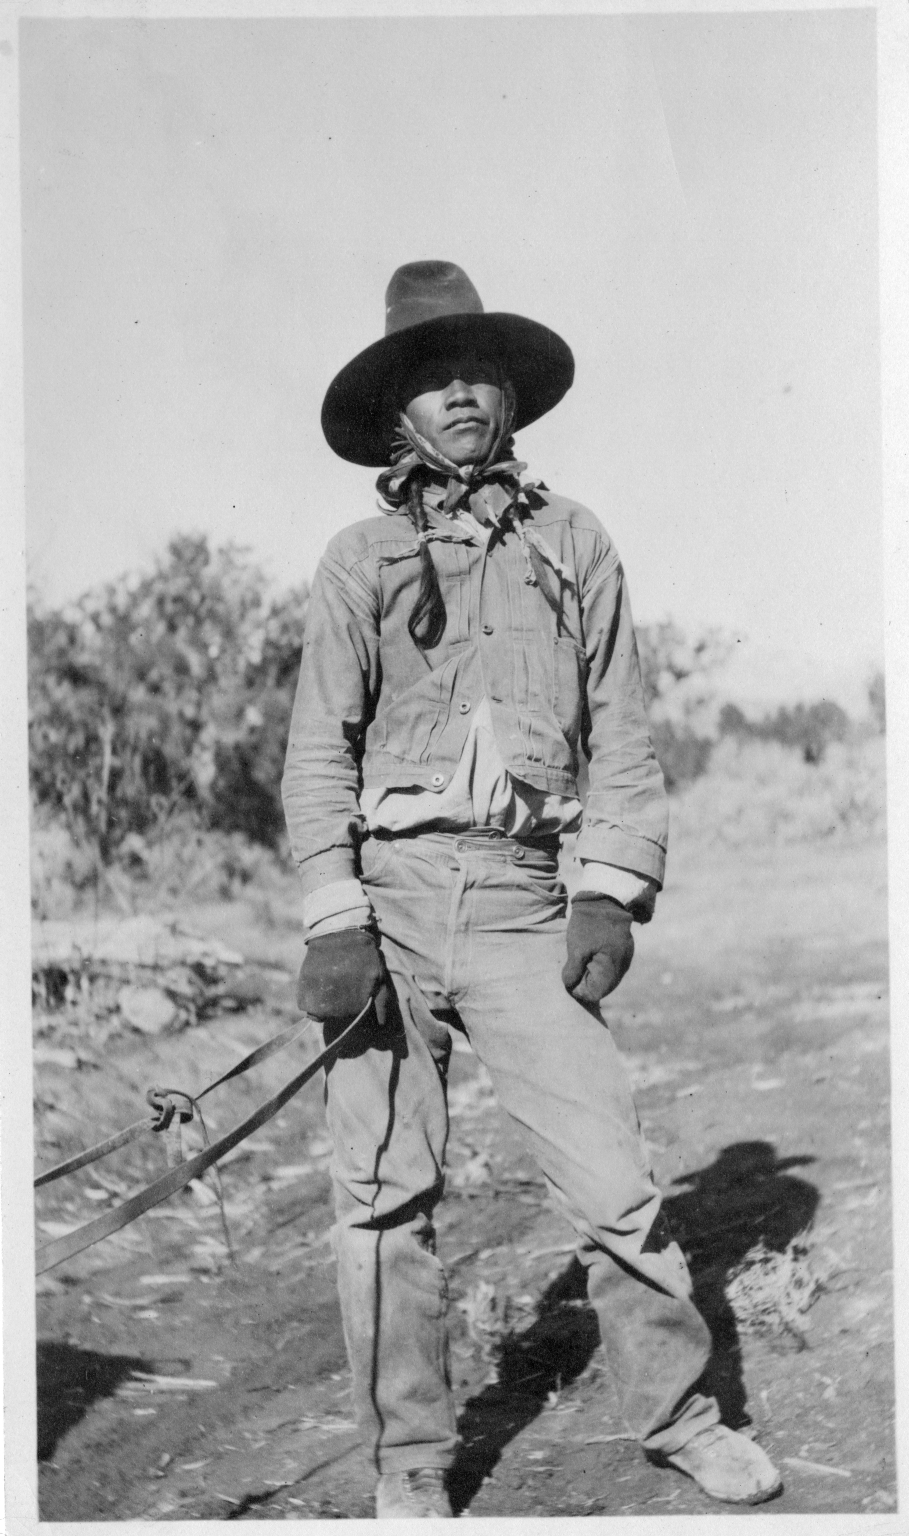 Portrait of a Ute Mountain Ute man